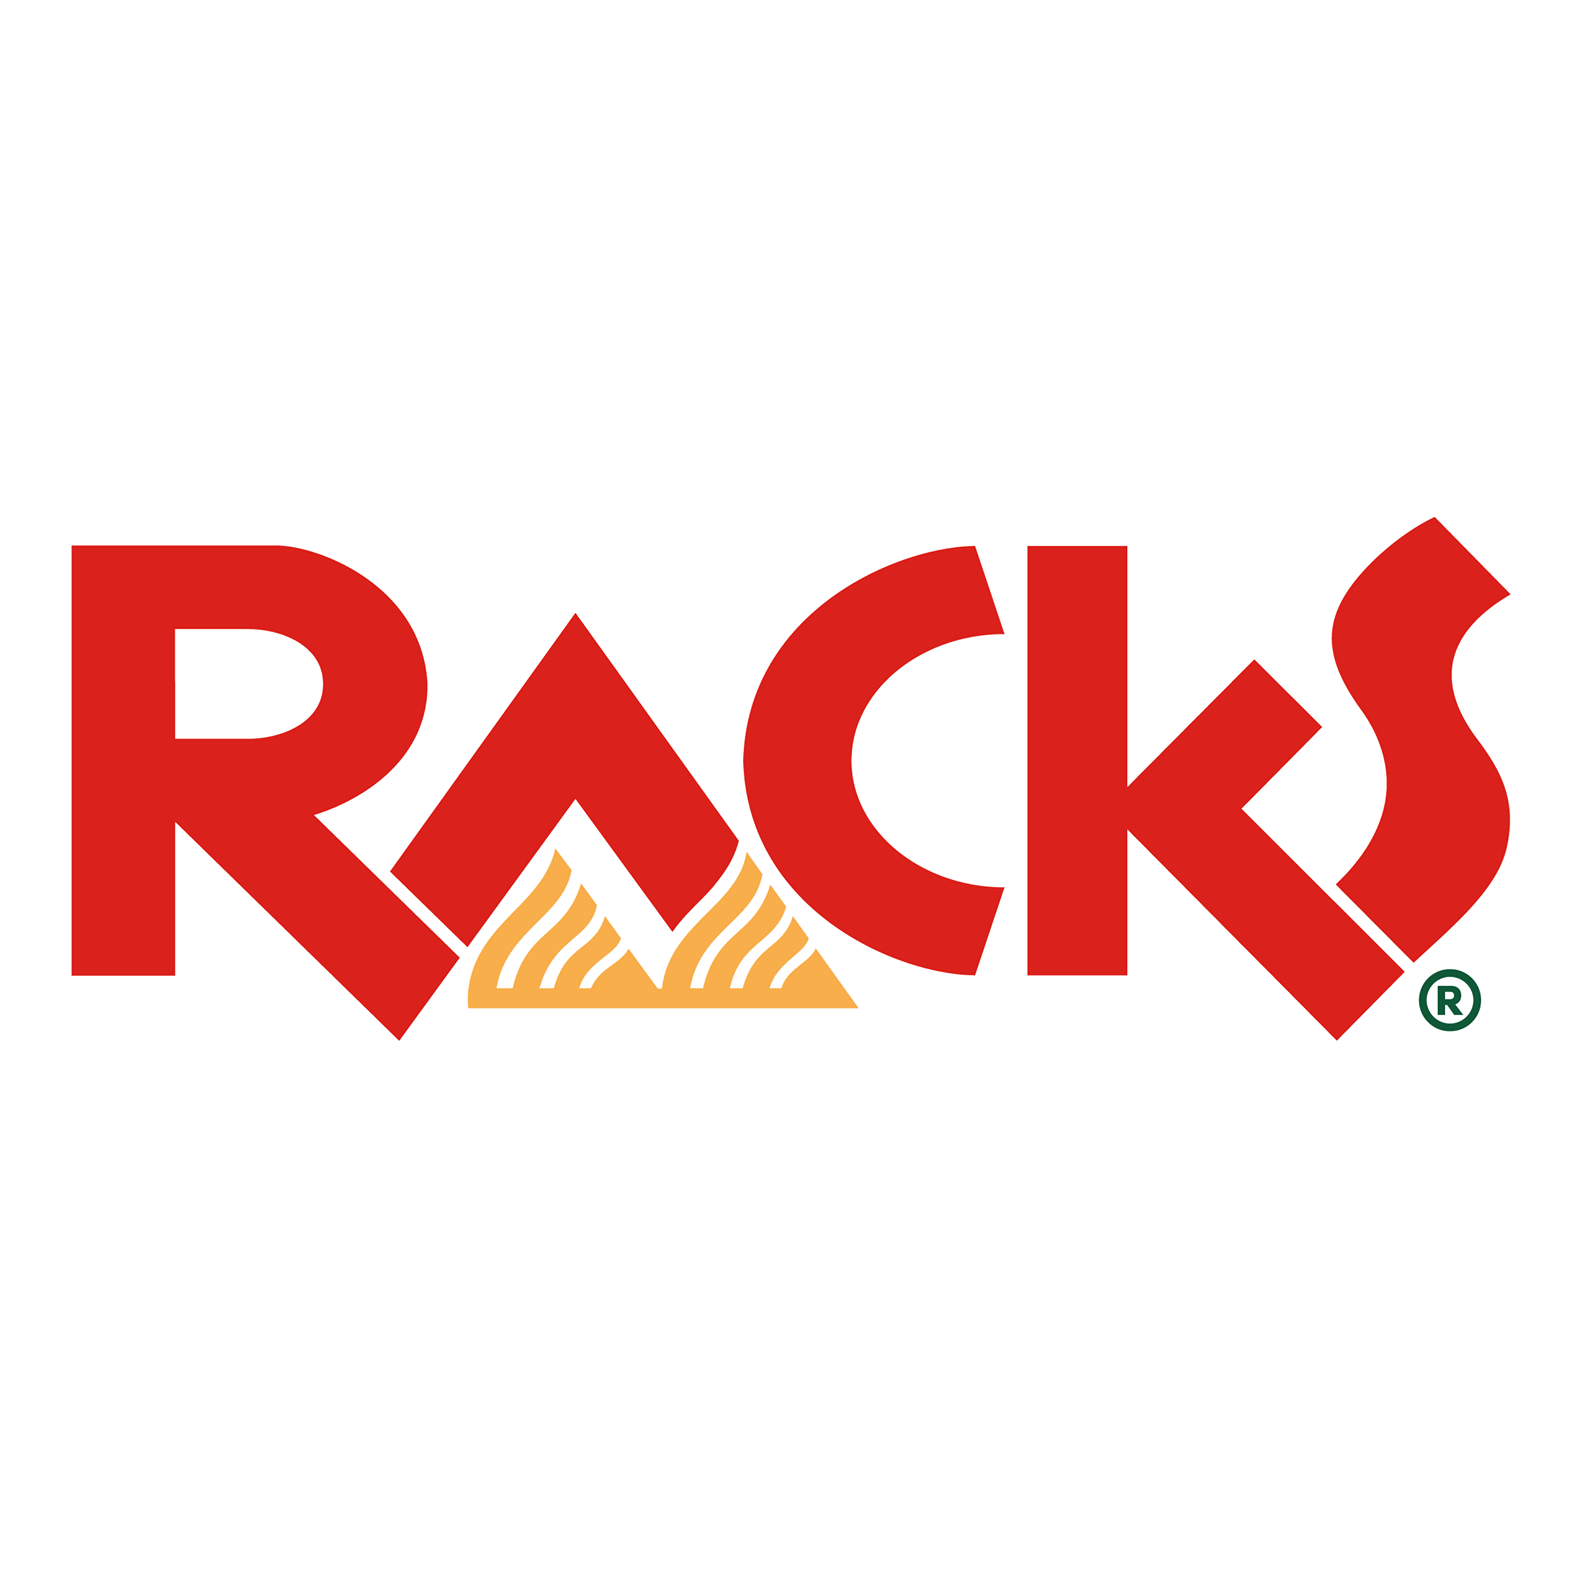 RACKS (The Fort Strip, BGC) Taguig City